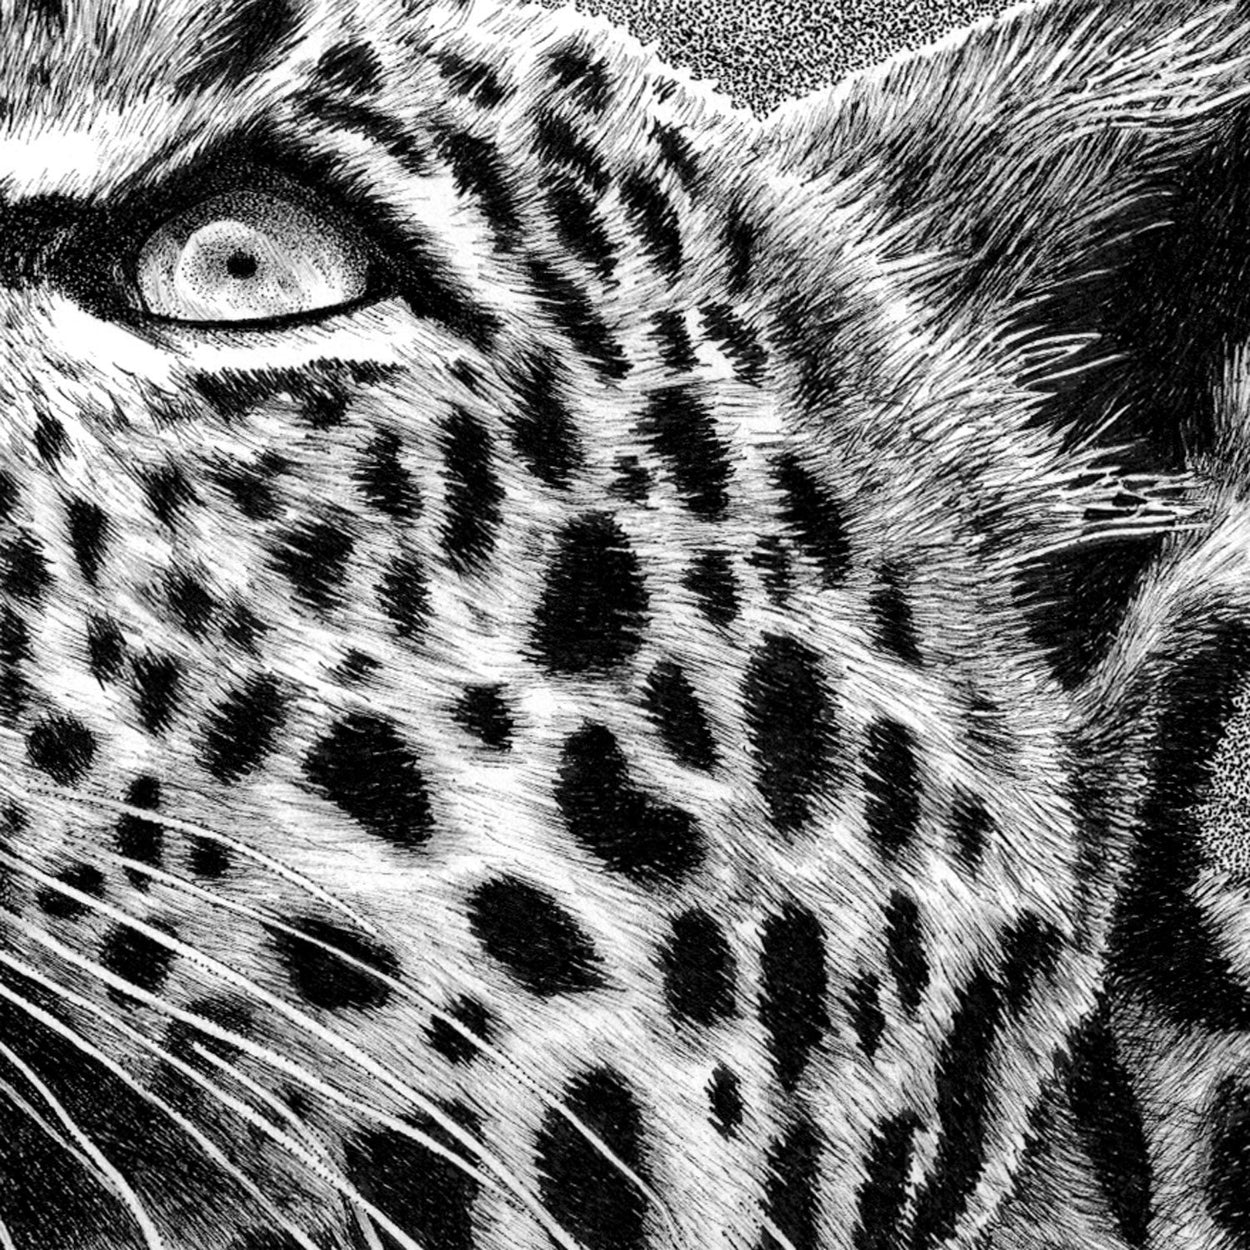 Leopard Pen Drawing Close-up - The Thriving Wild